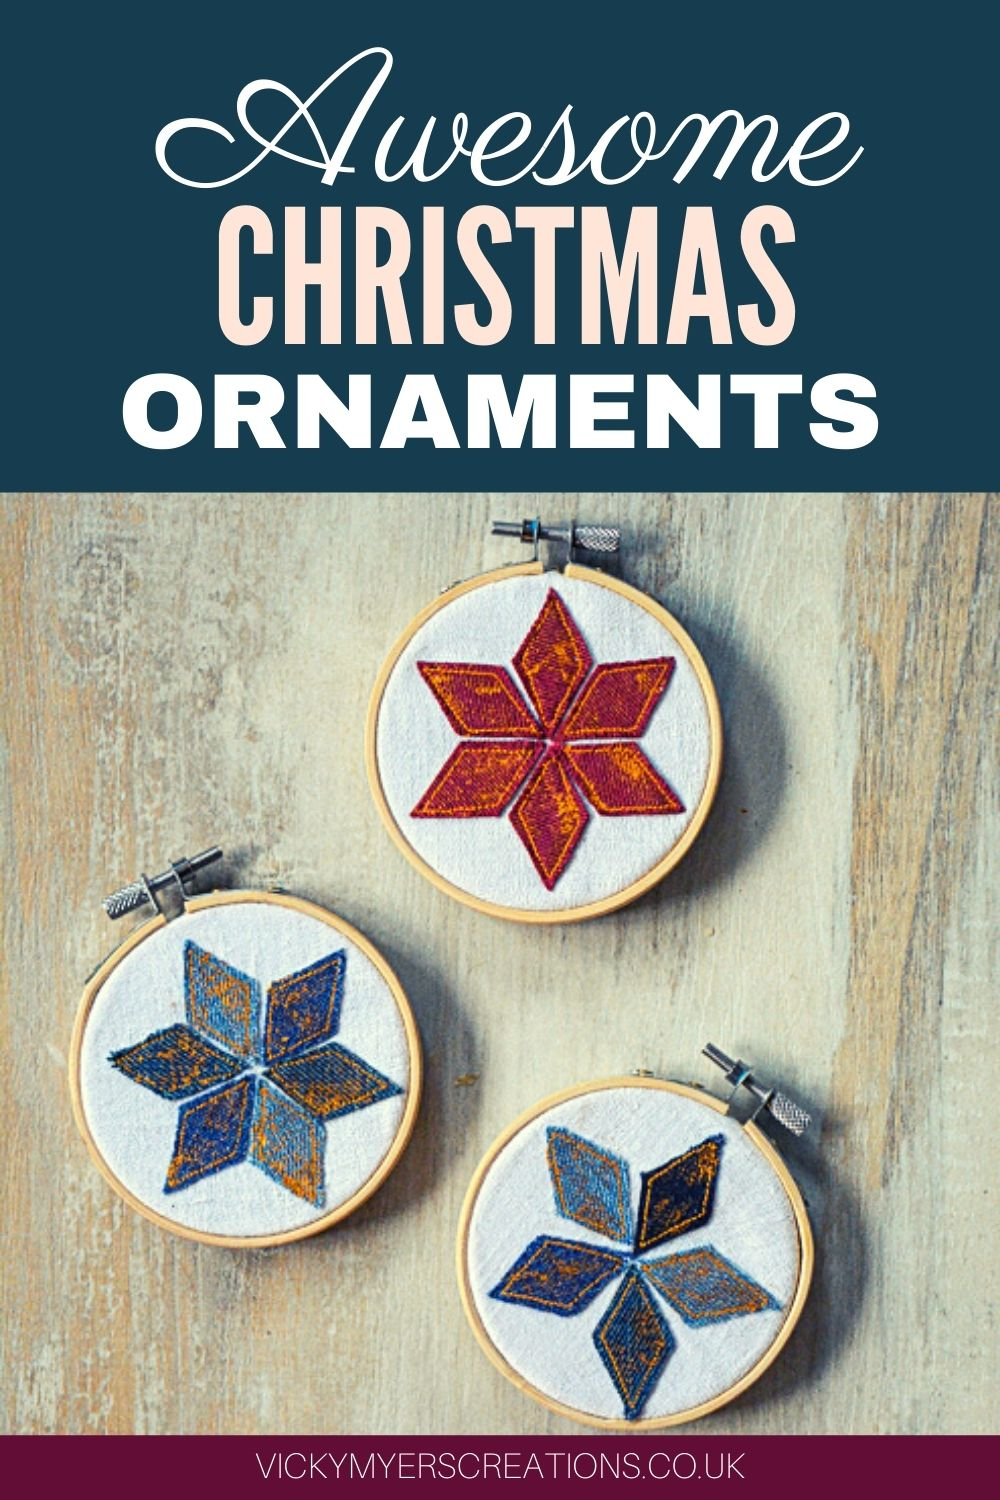 Looking for a simple, pretty homemade Christmas ornament?  Christmas ornaments made with embroidery hoops are super easy and fun. Find some scraps of fabric and lets get started